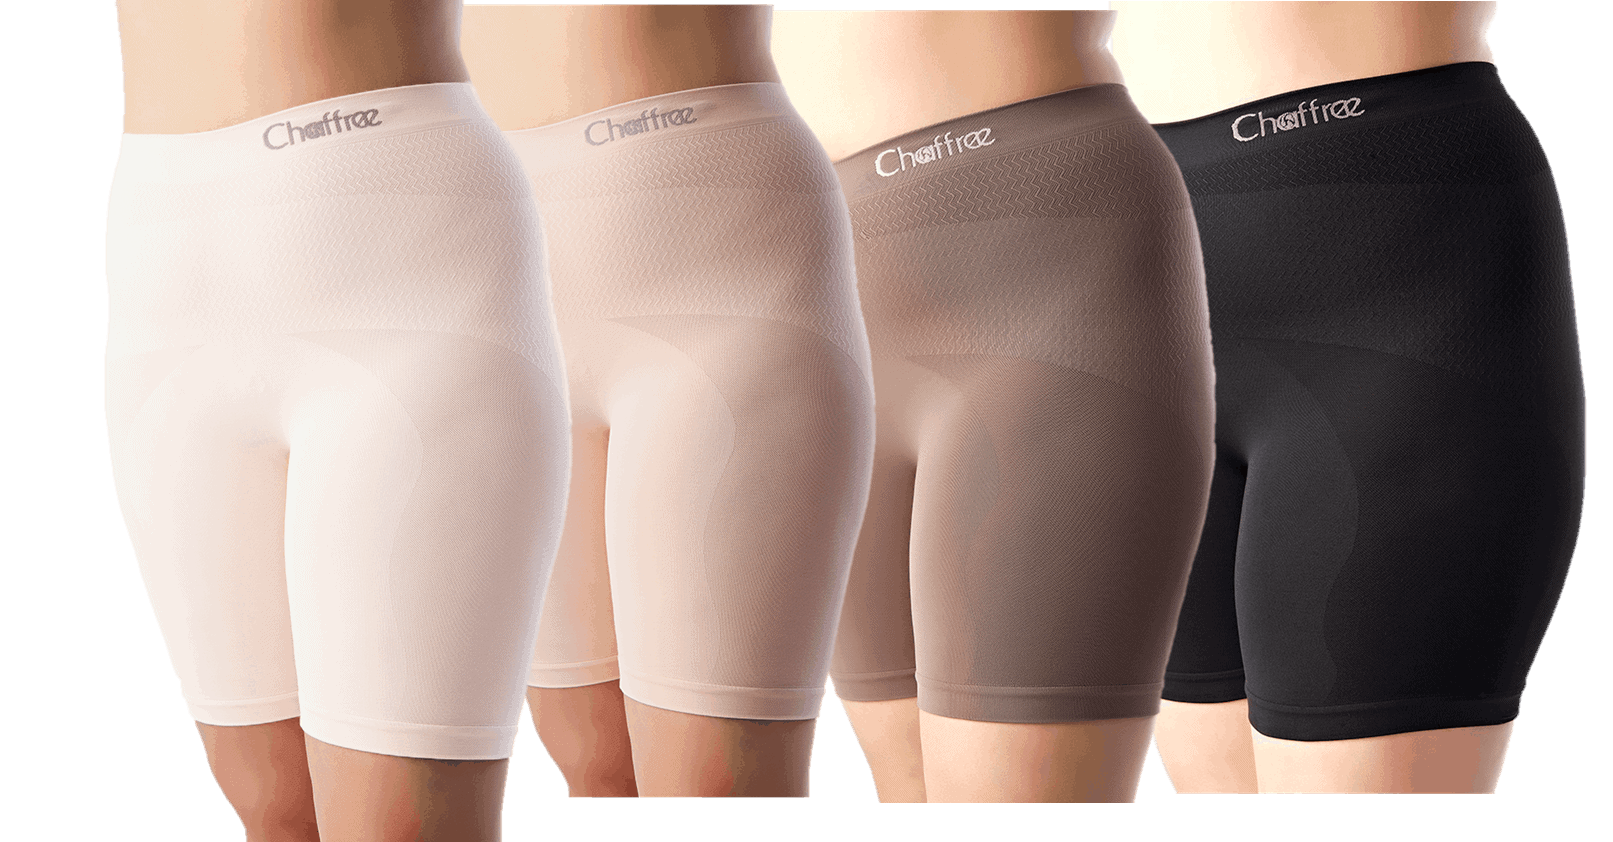 Womens KnickerBoxers - Chaffree